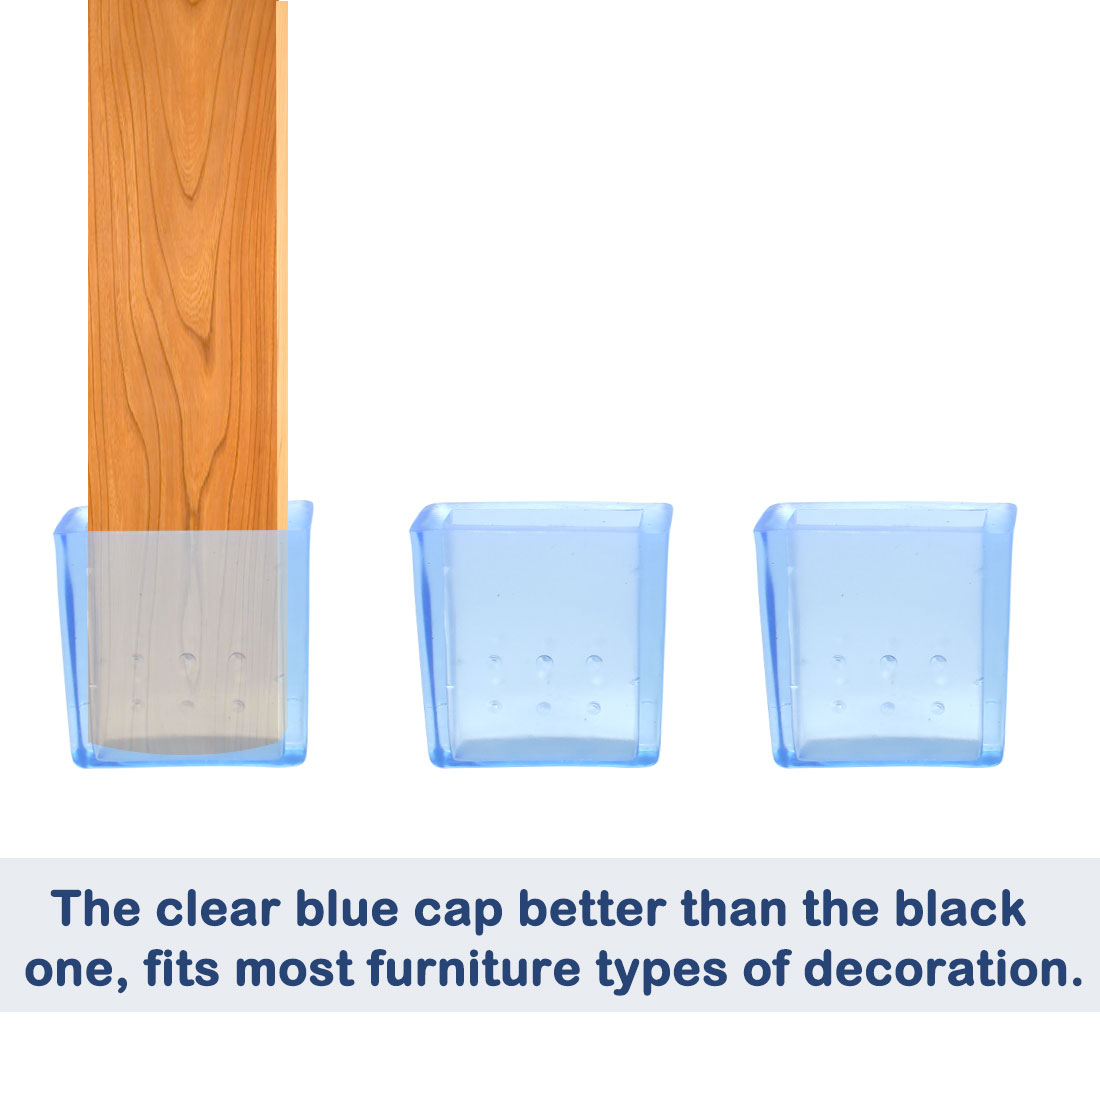 "Clear Blue Sofa Leg Caps End Tip Feet Furniture Protector 6pcs 0.39""x1.18"" (10x30mm) - image 4 of 7"